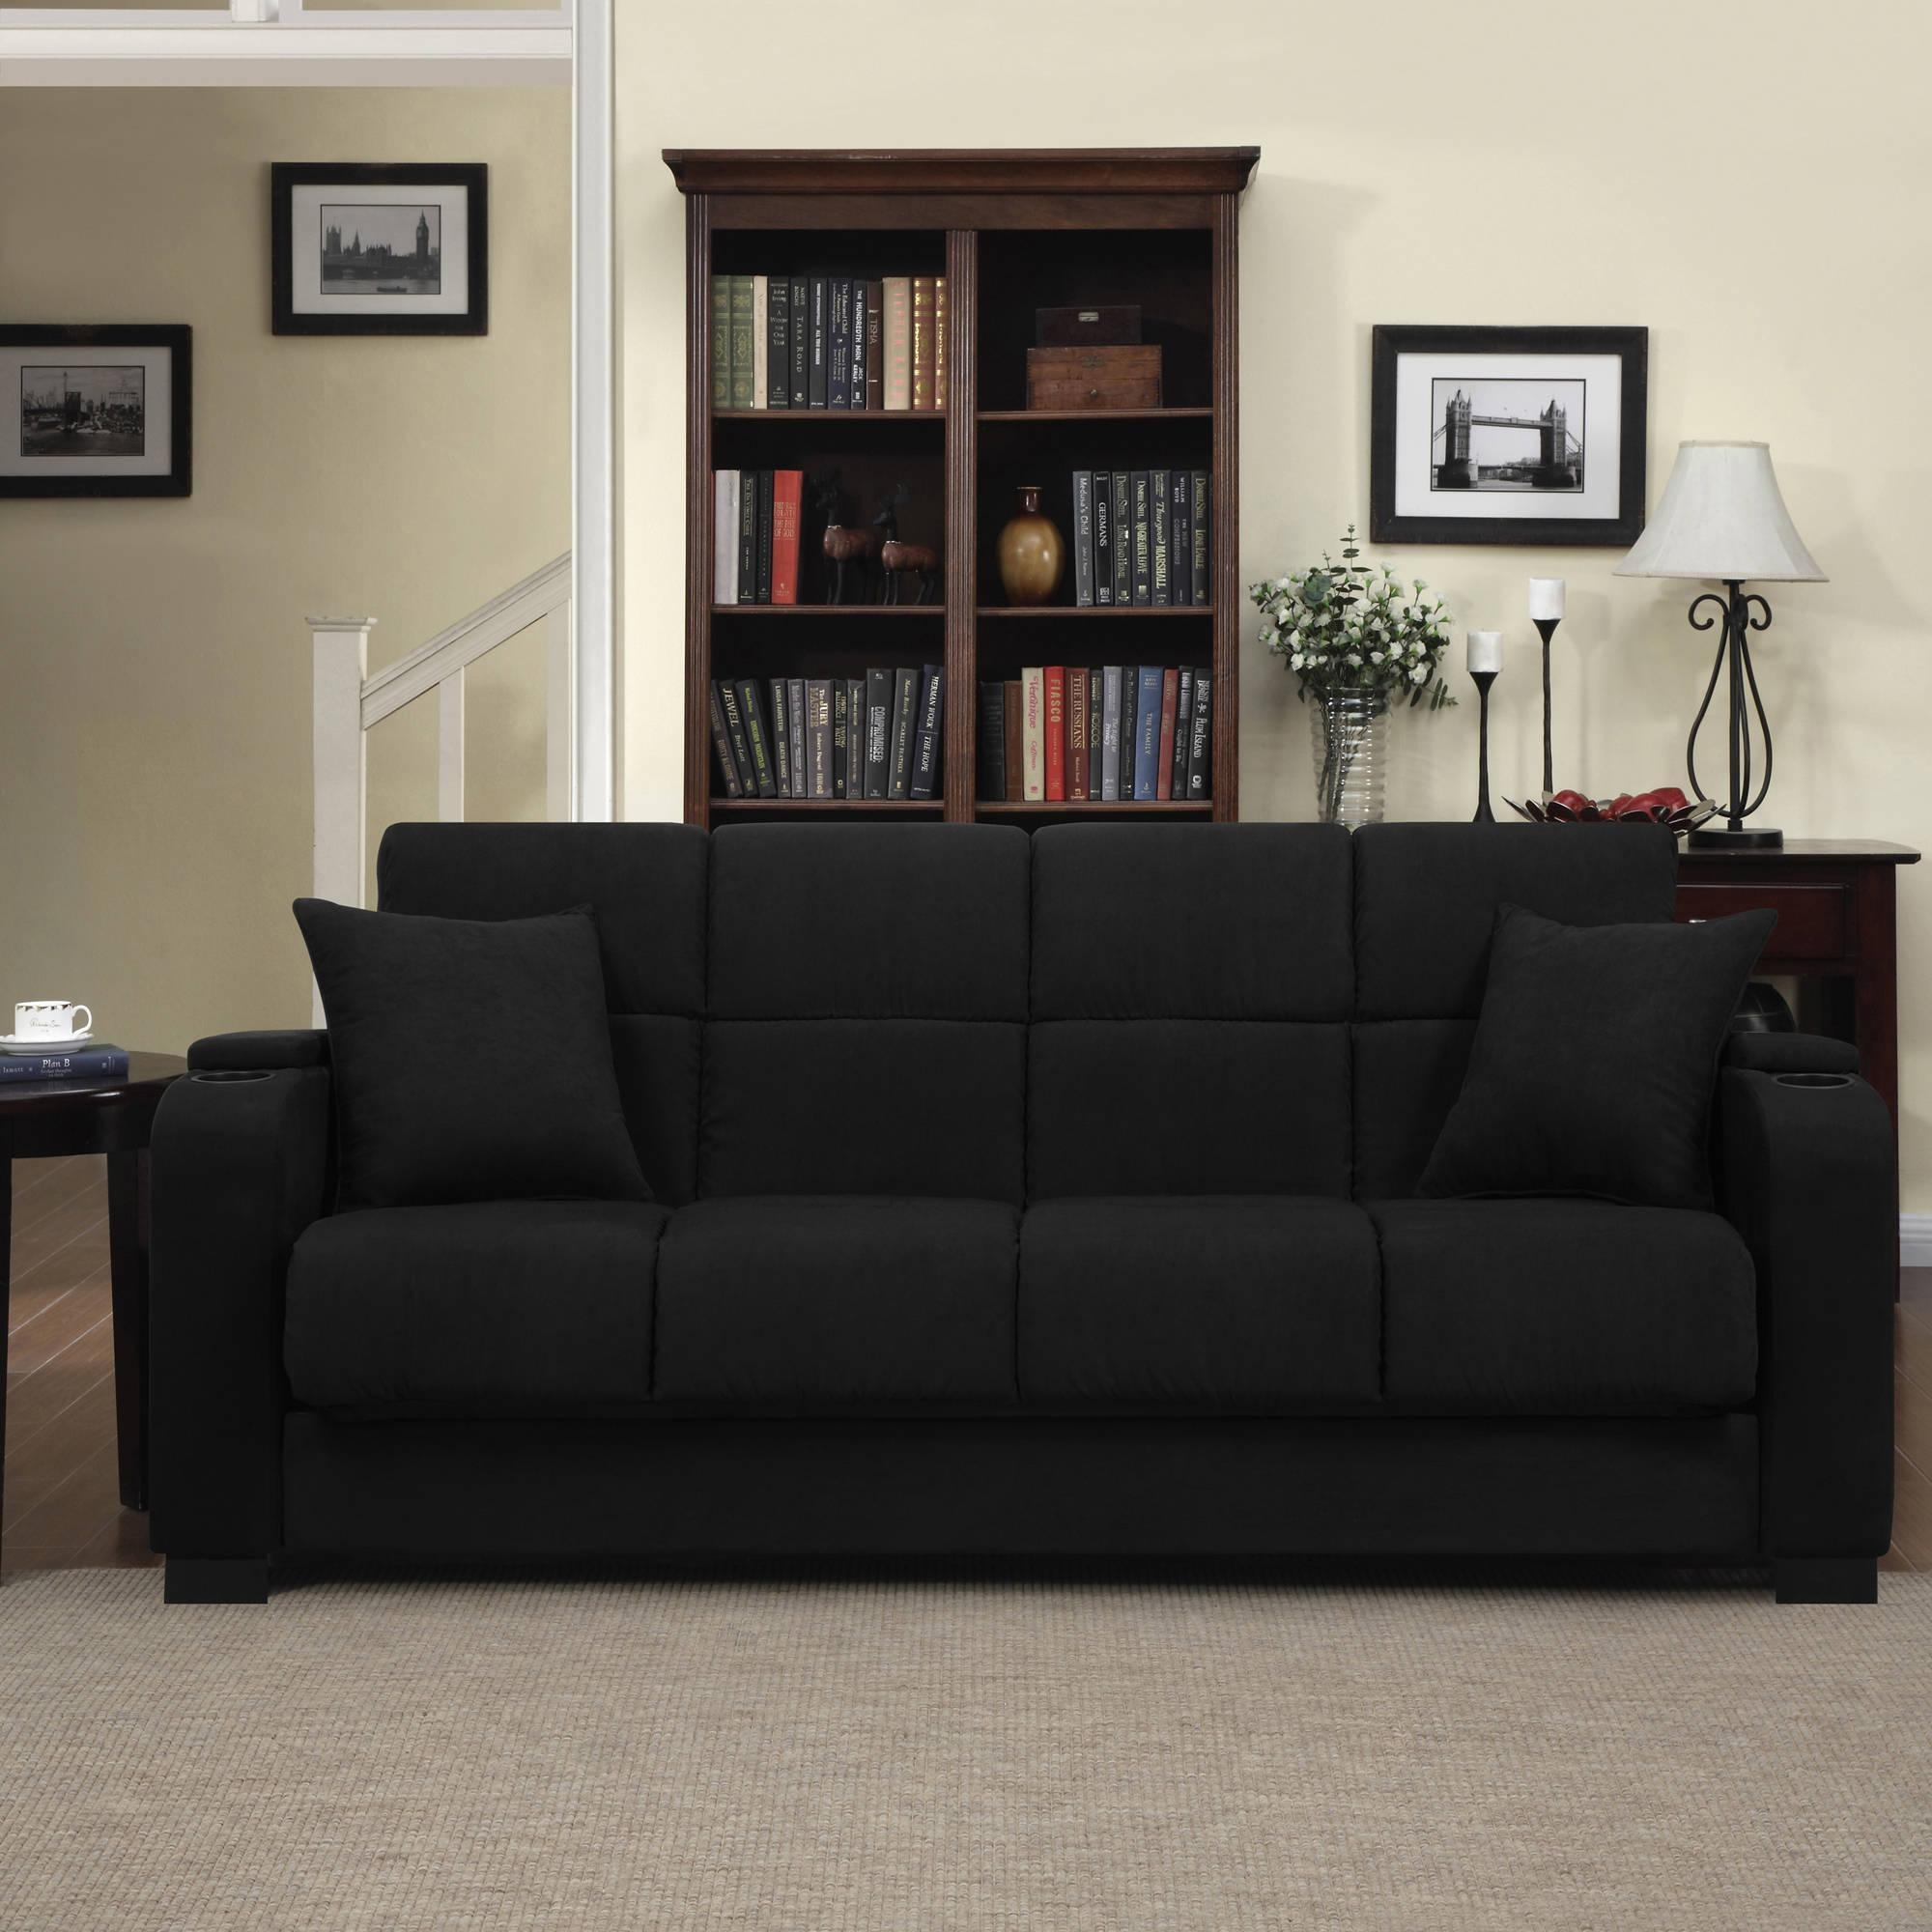 Furniture: Couch Covers At Walmart To Make Your Furniture Stylish Within Sofas With Black Cover (View 10 of 20)